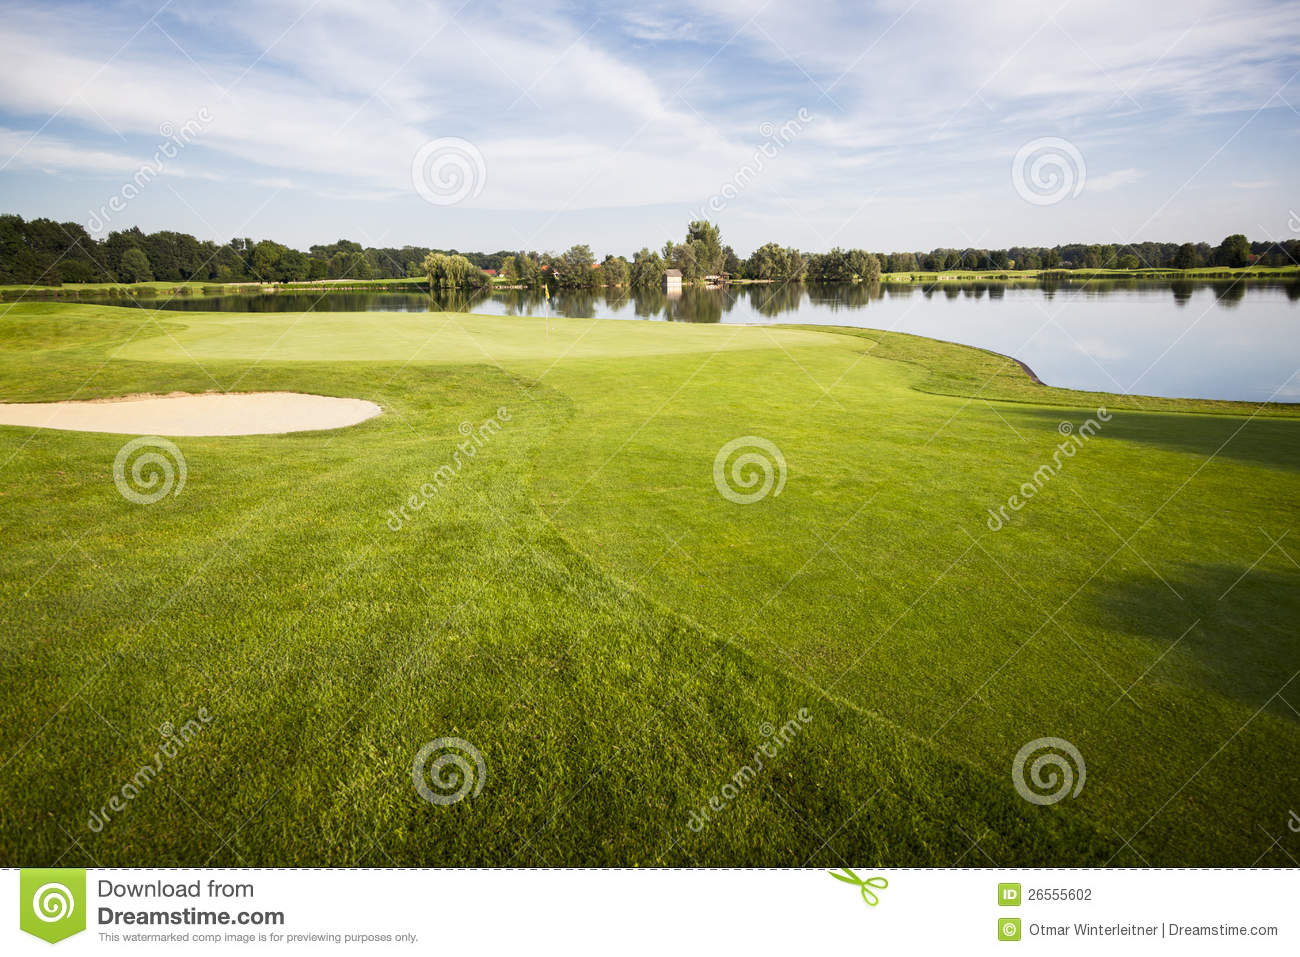 Golf course with green.